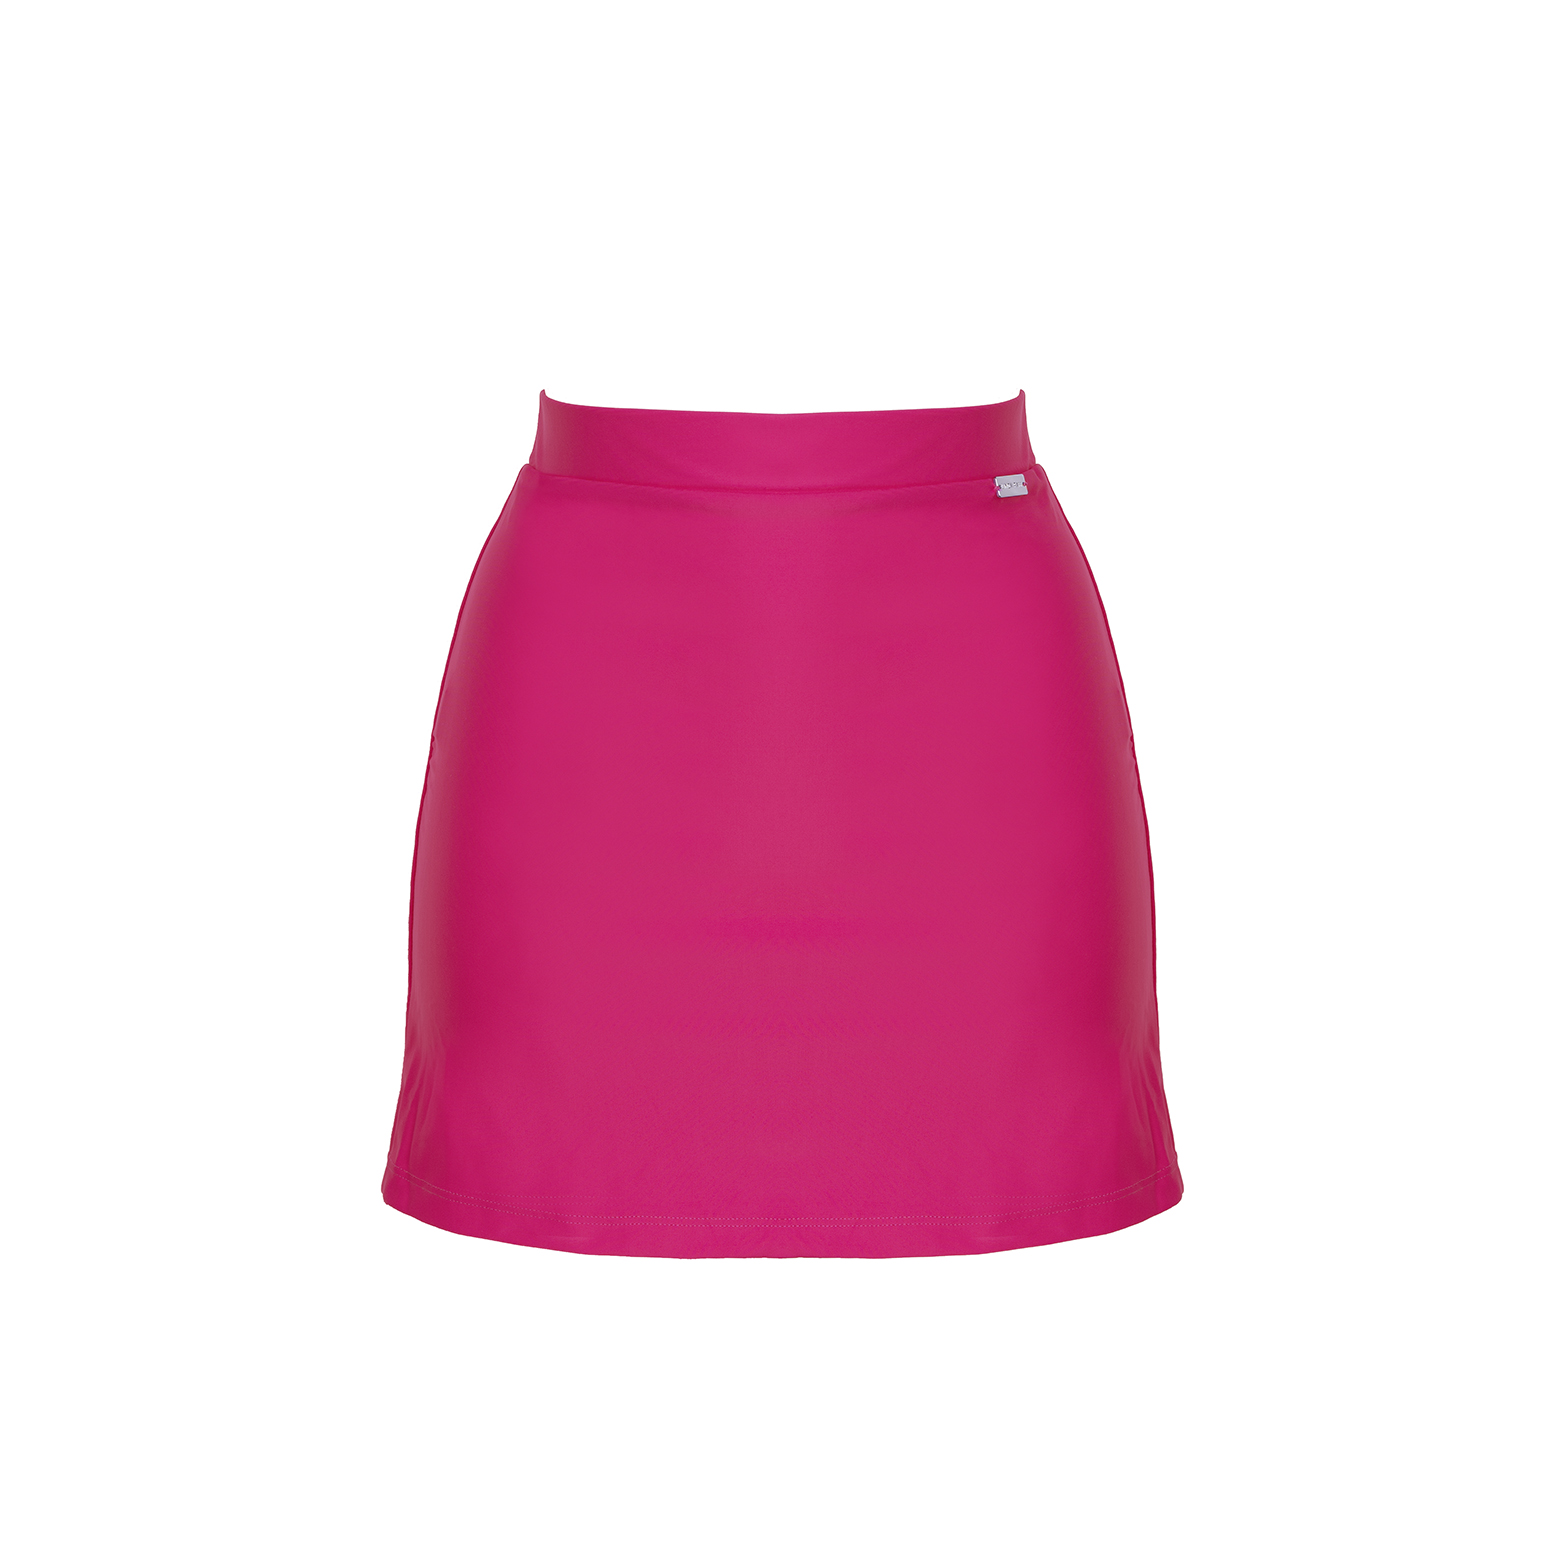 Linda Raff Collection -SKIRT ECO MAGENTA